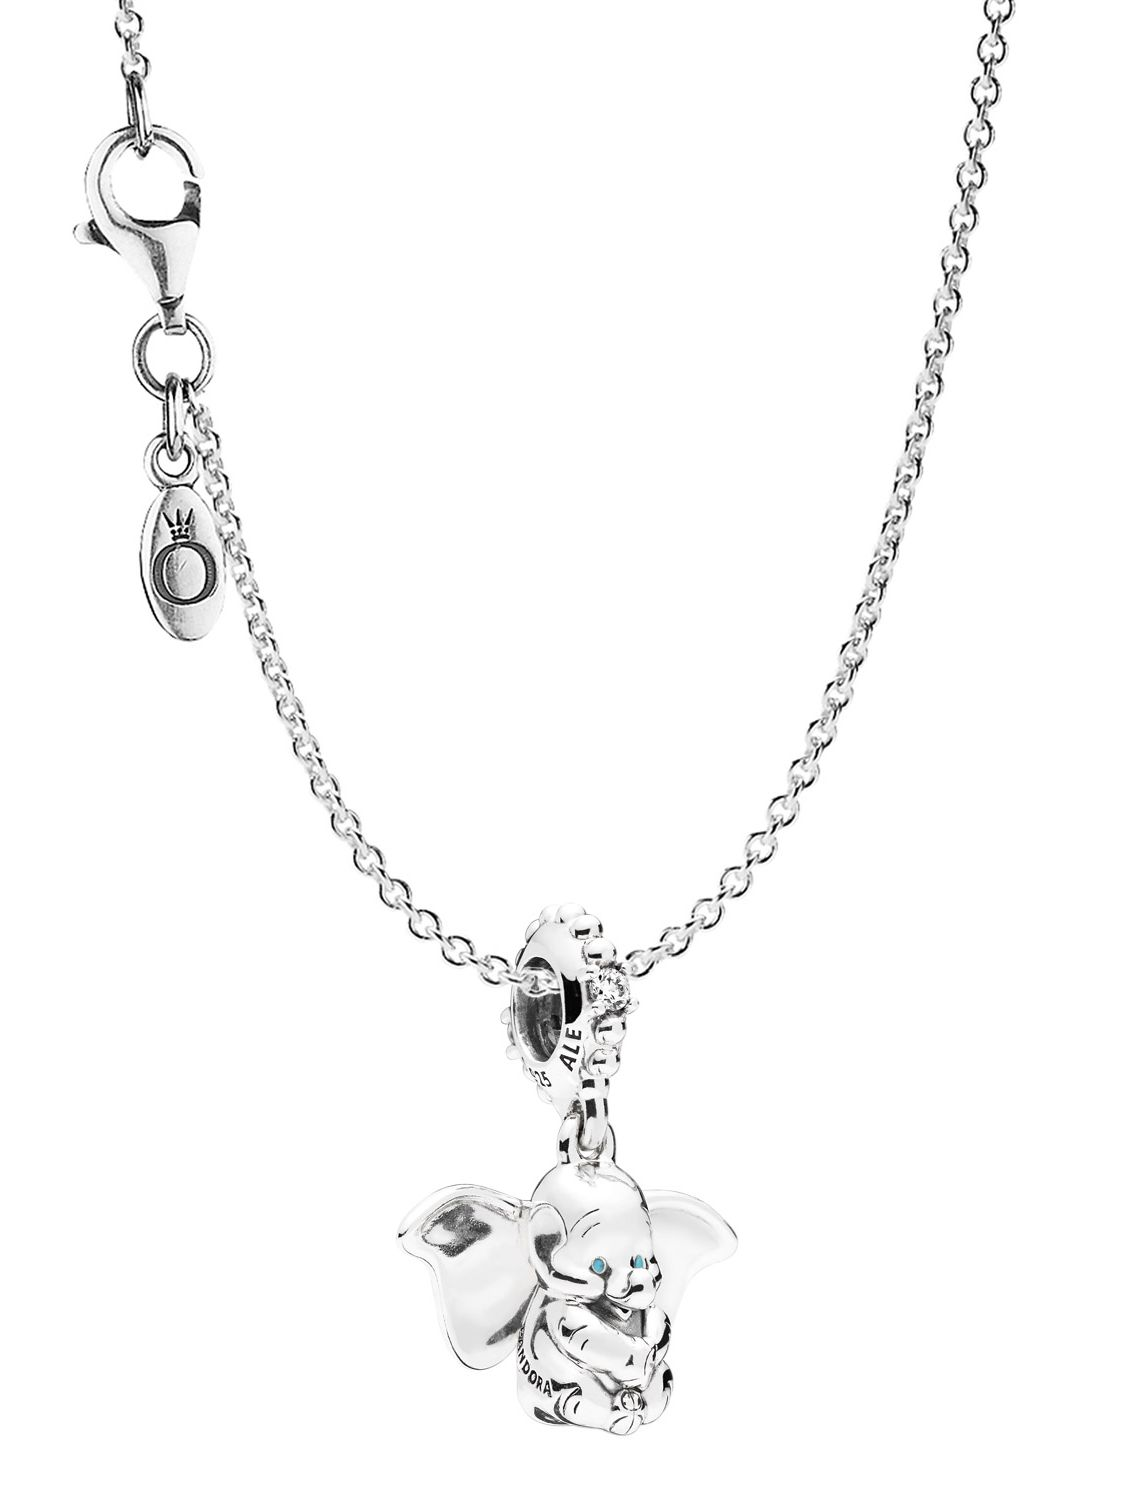 db79b75f85e50 Pandora 75247 Necklace with Charm Dumbo Silver 925